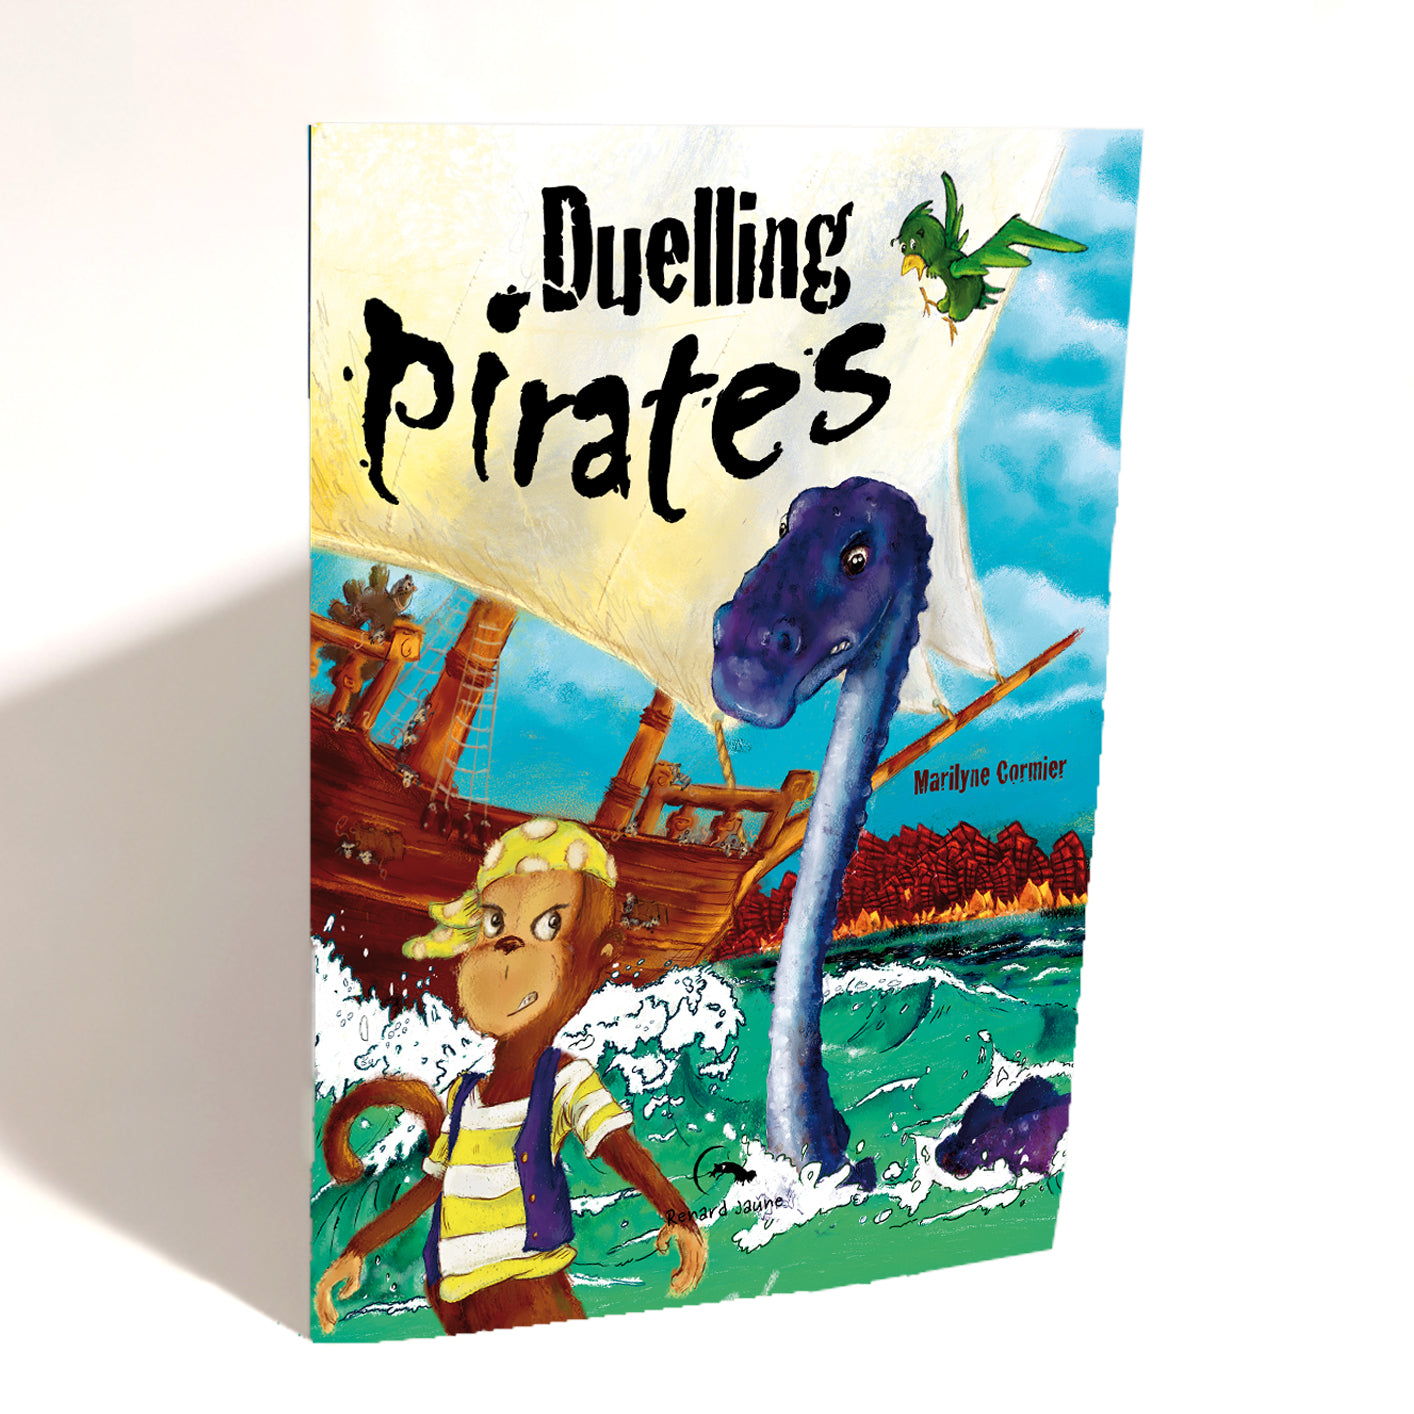 Duelling pirates (Mini - Boy)